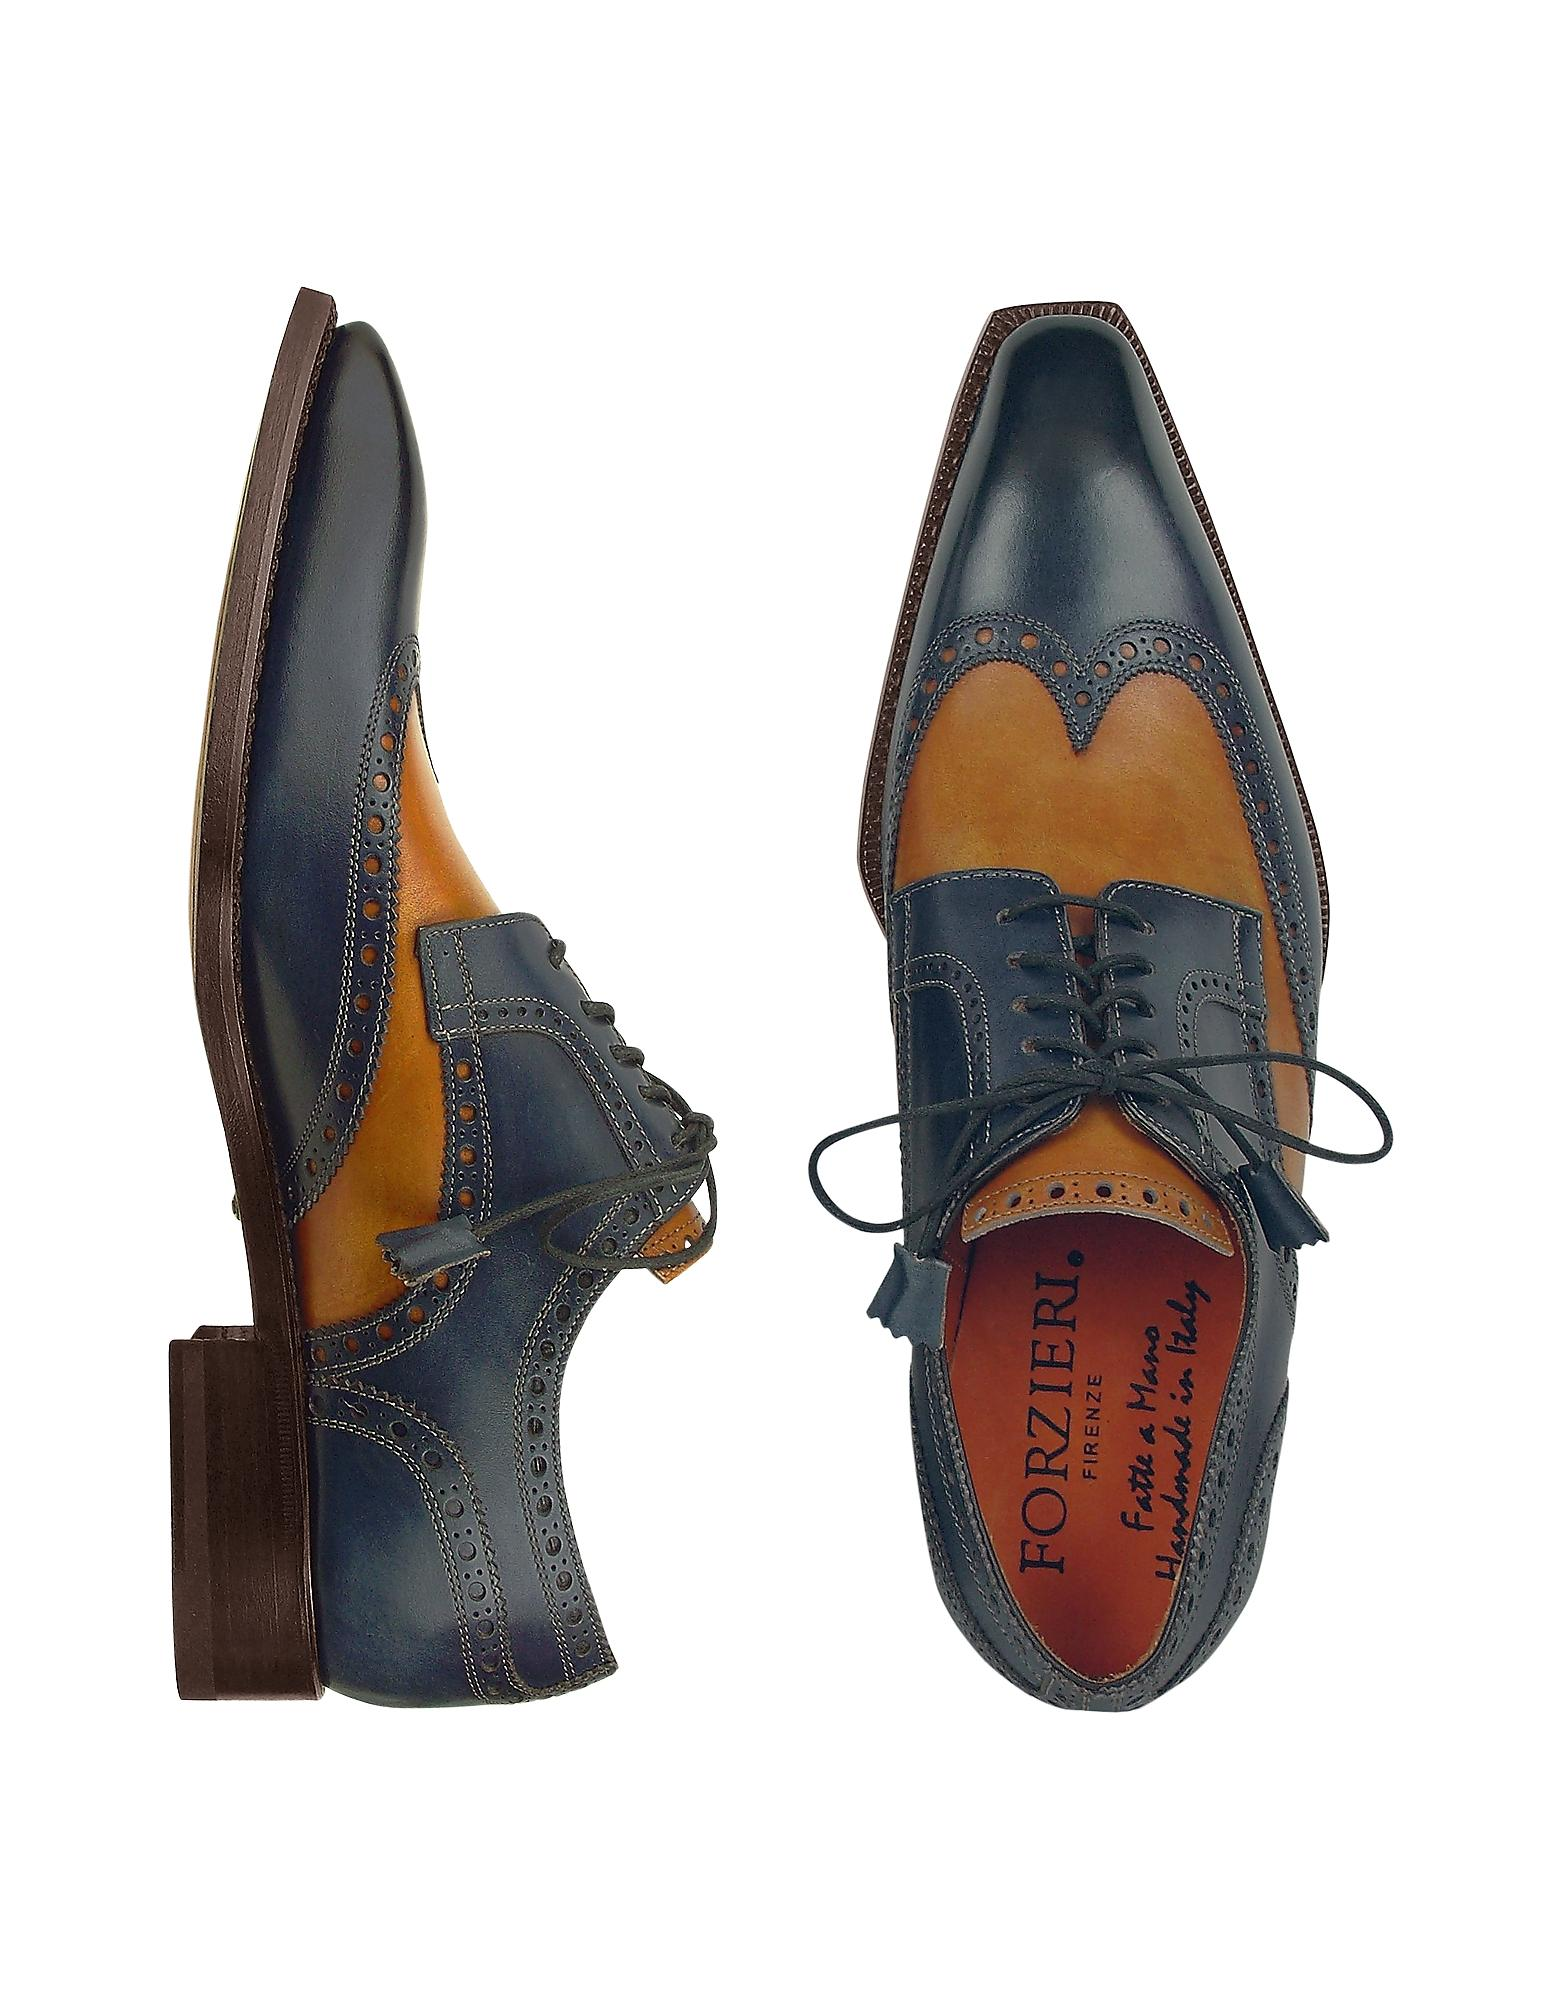 Womens Oxford Shoes Blue Two Tone